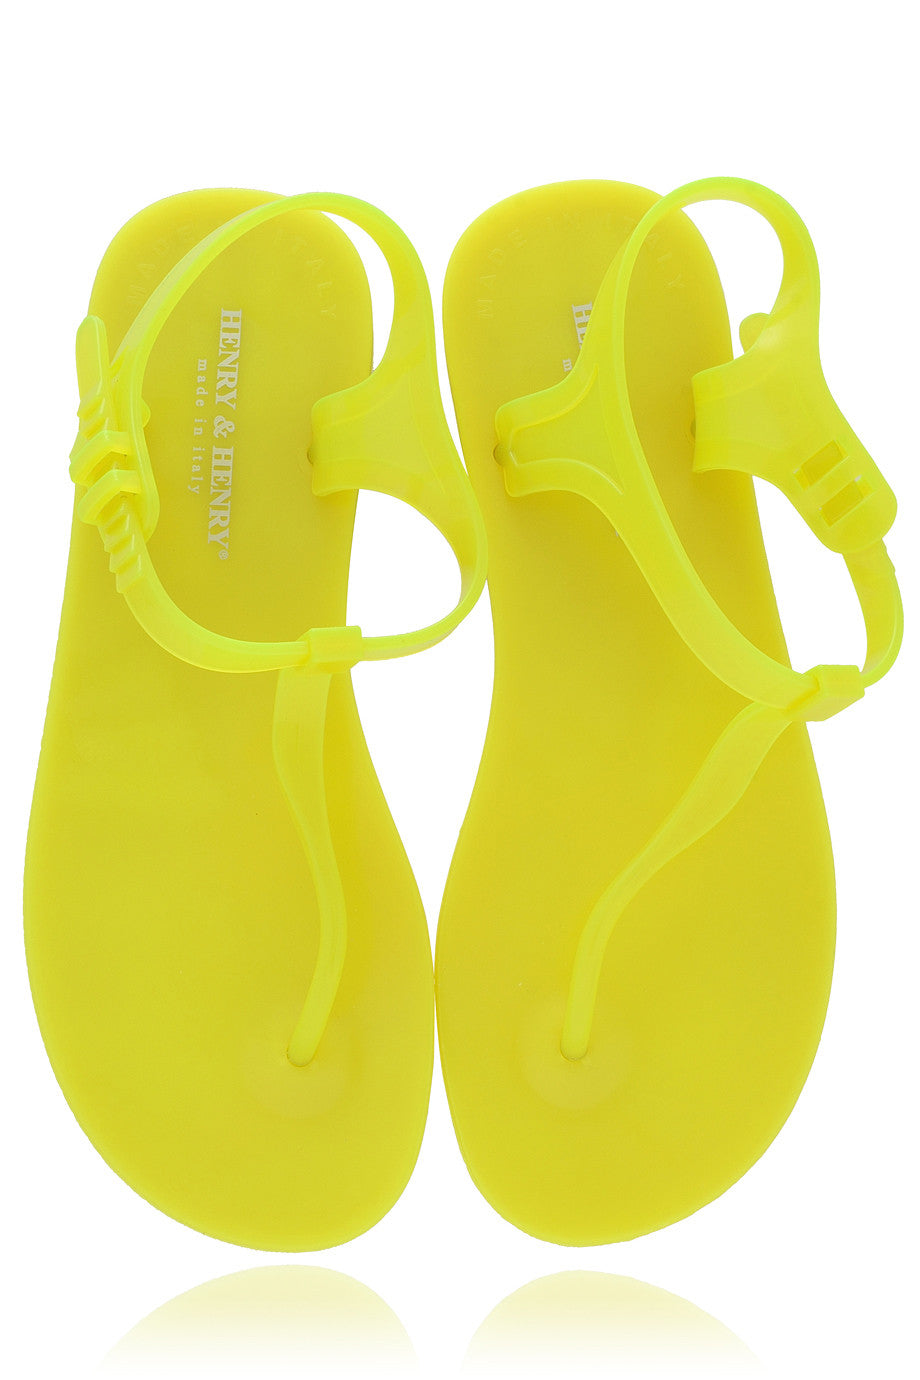 4cbe69aed584 HENRY   HENRY ATHENA Yellow Fluo Rubber Sandals – PRET-A-BEAUTE.COM